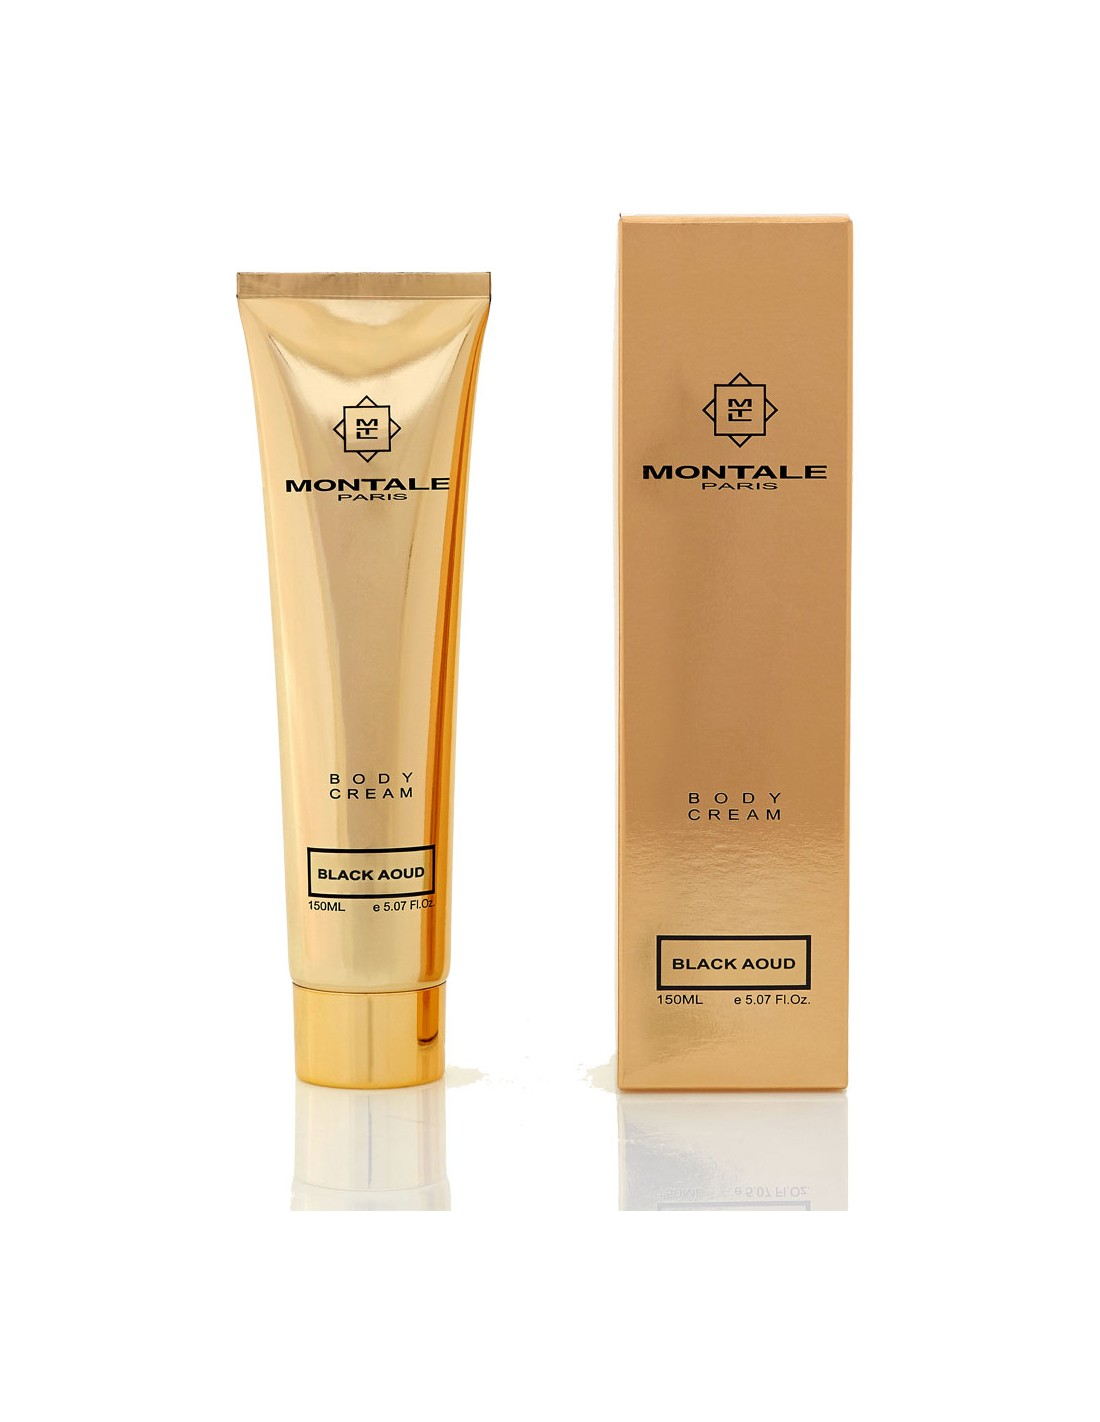 Parenti Profumeria | Montale BLACK AOUD  BODY CREAM